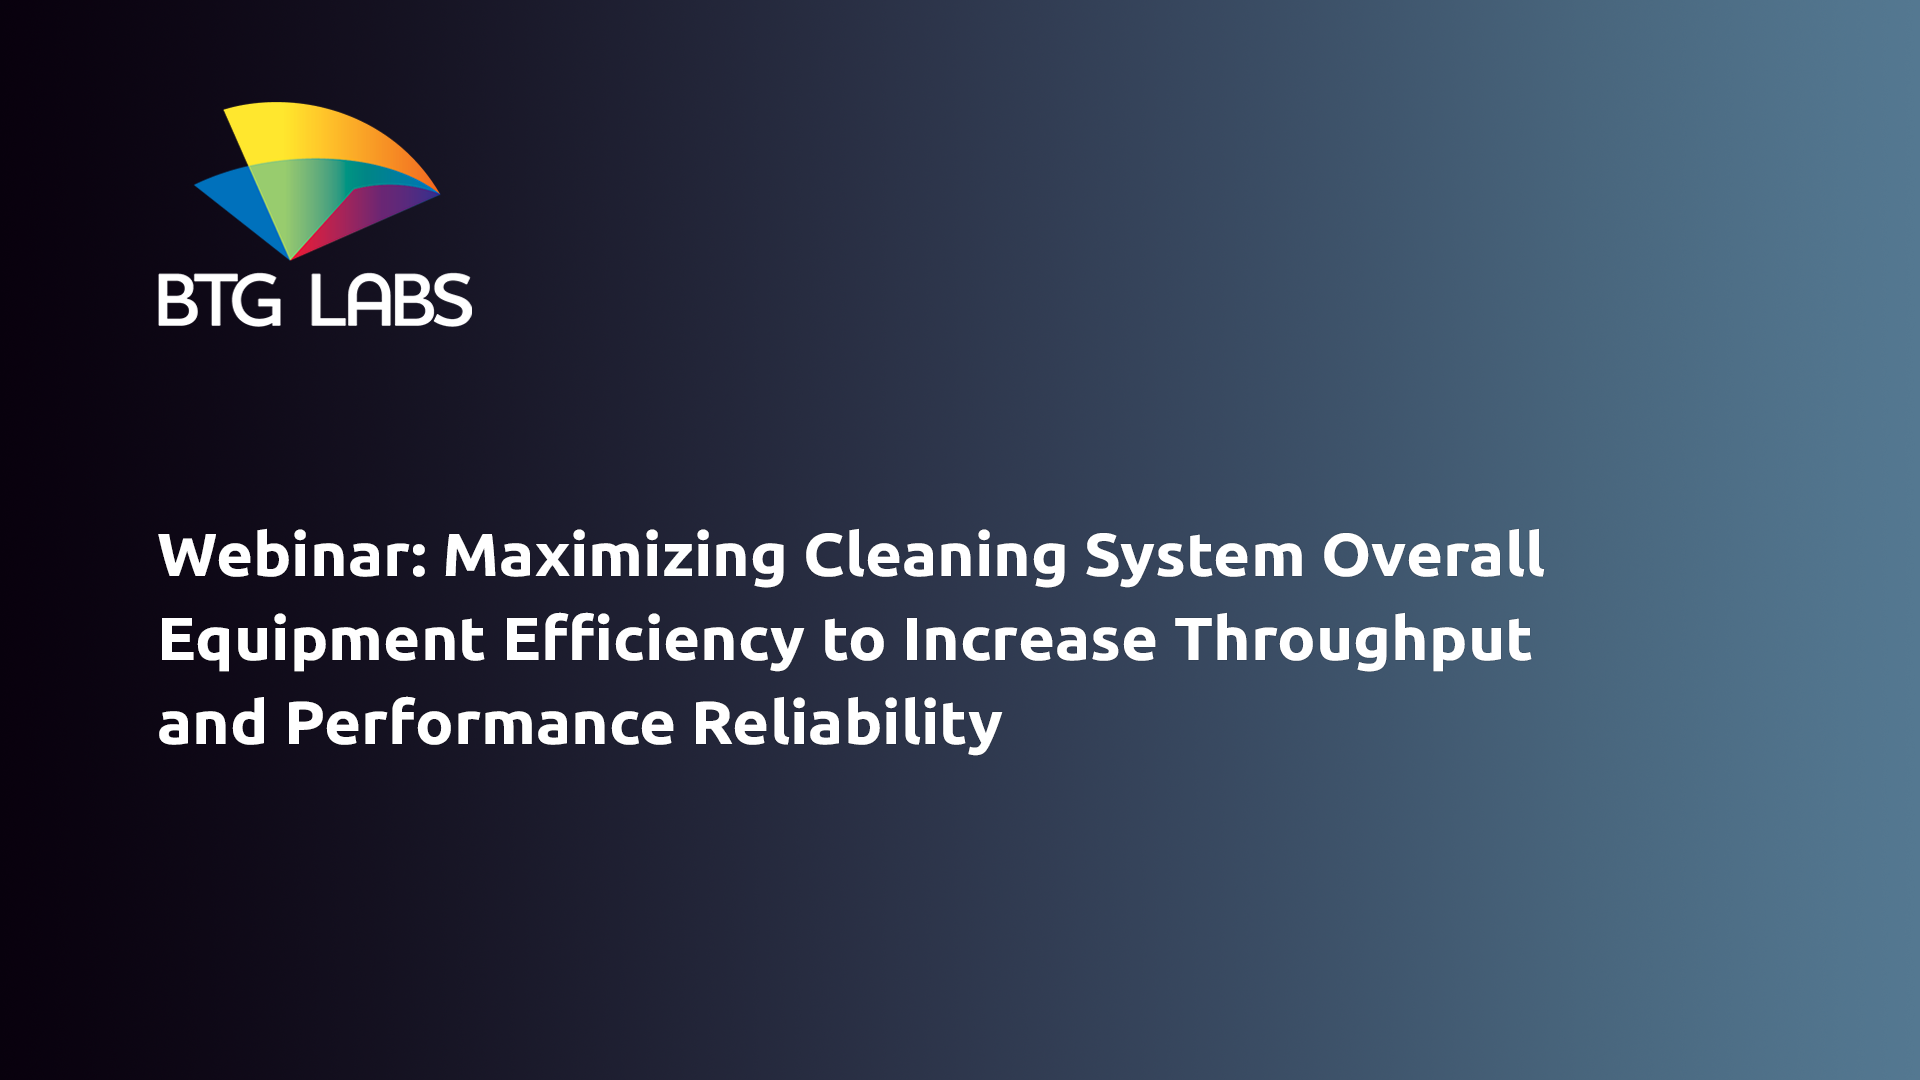 maximizing-cleaning-system-overall-equipment-efficiency-to-increase-throughput-and-performance-relia